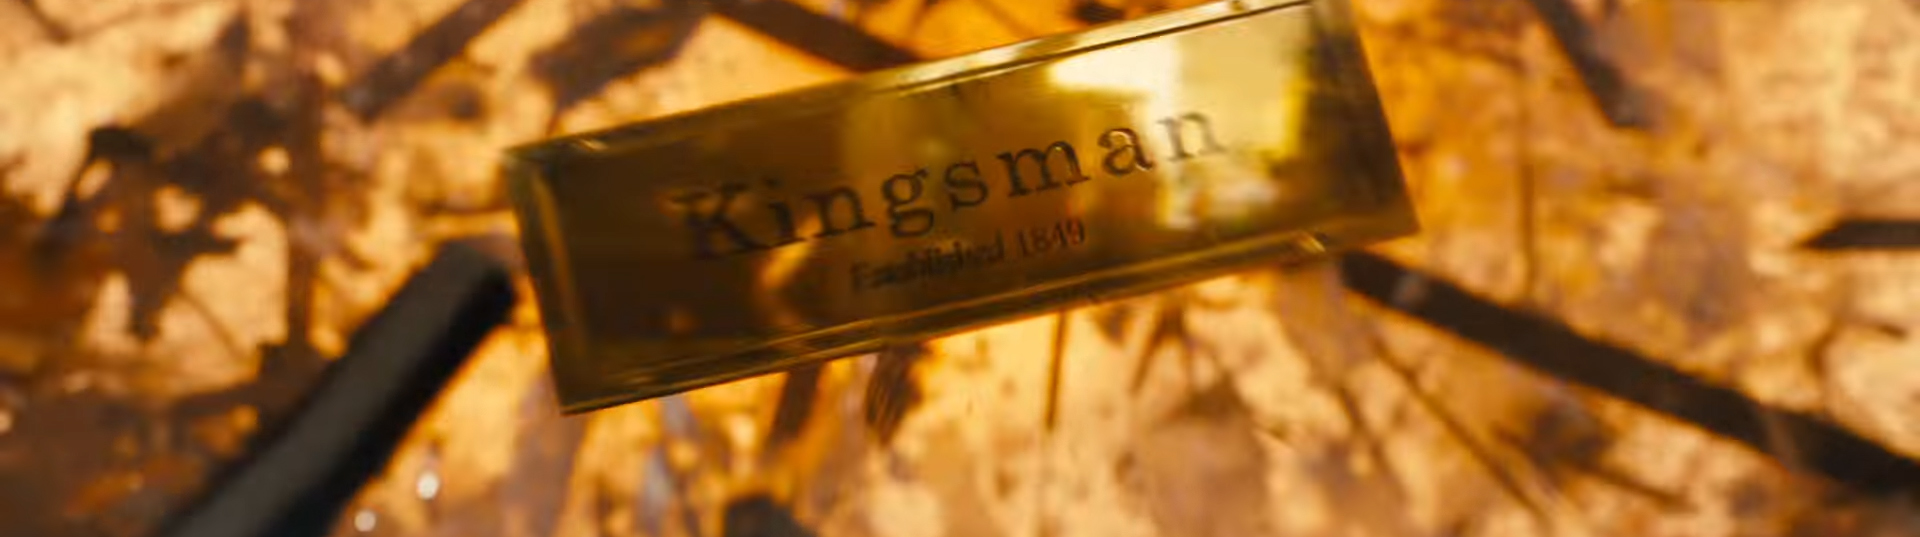 Kingsman The Golden Circle. Image Credit: 20th Century Fox.